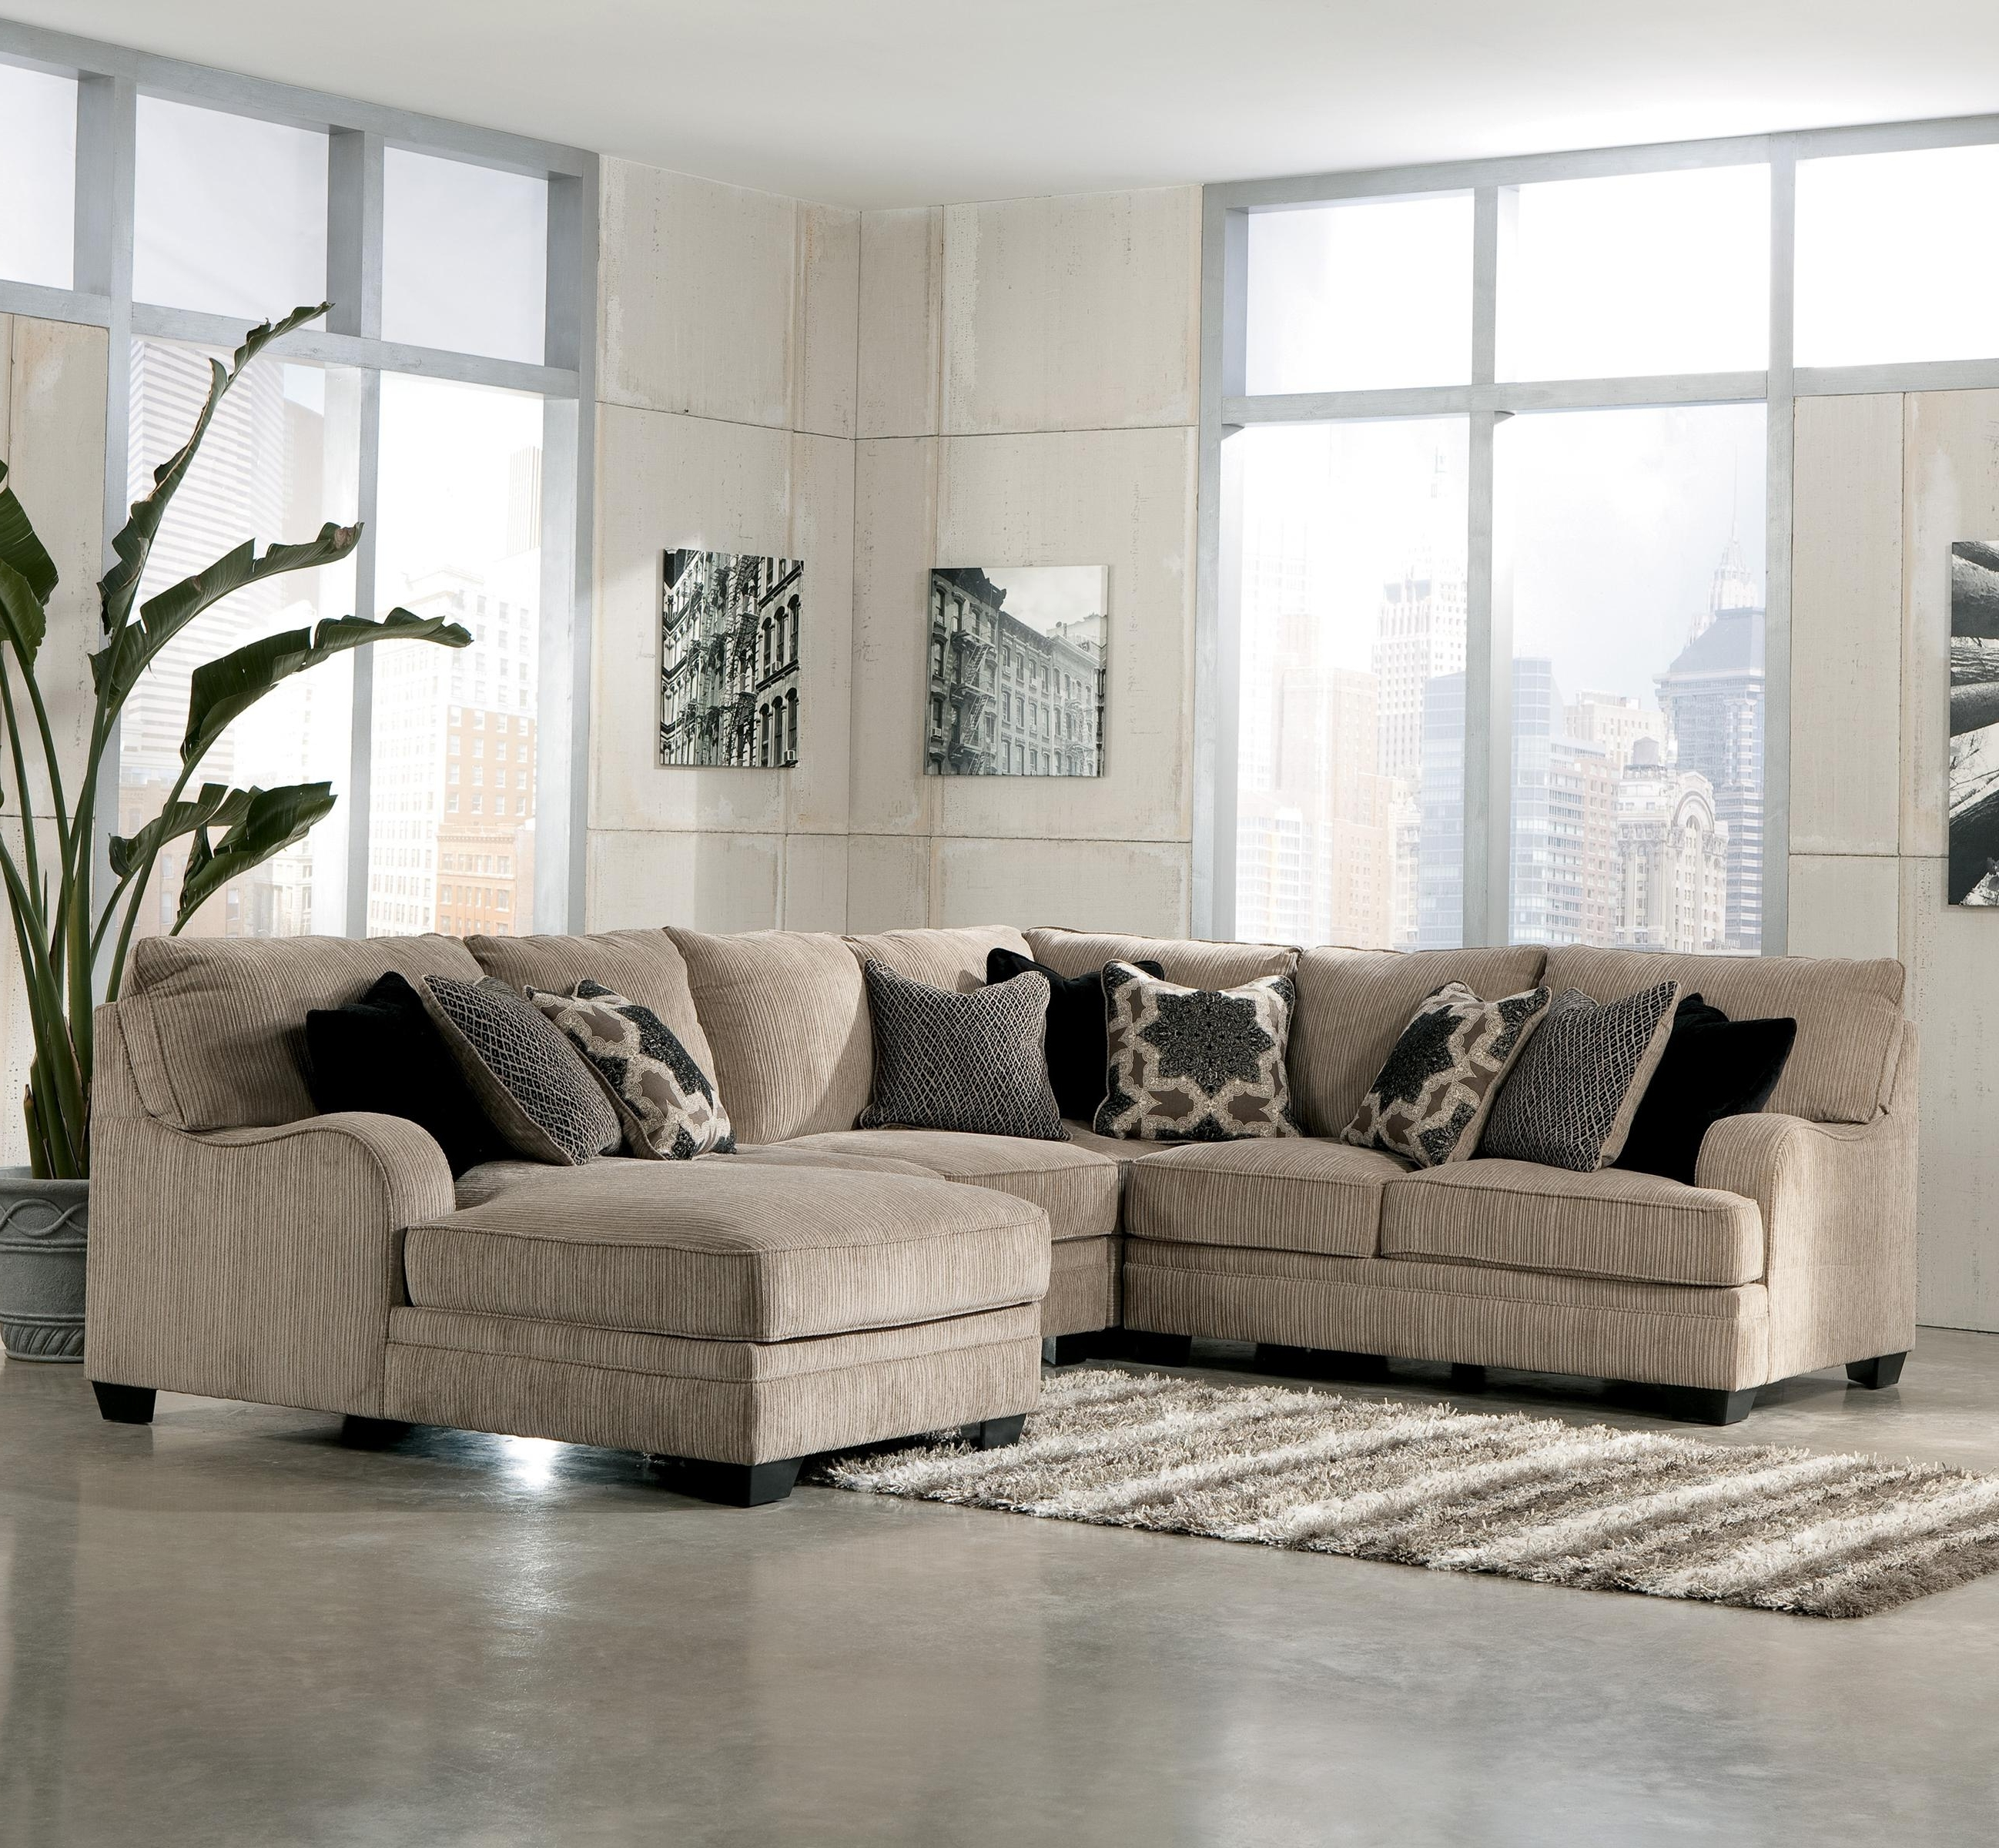 Most Recent 4 Piece Sectional Sofas With Chaise Throughout Signature Designashley Katisha – Platinum 4 Piece Sectional (View 13 of 15)